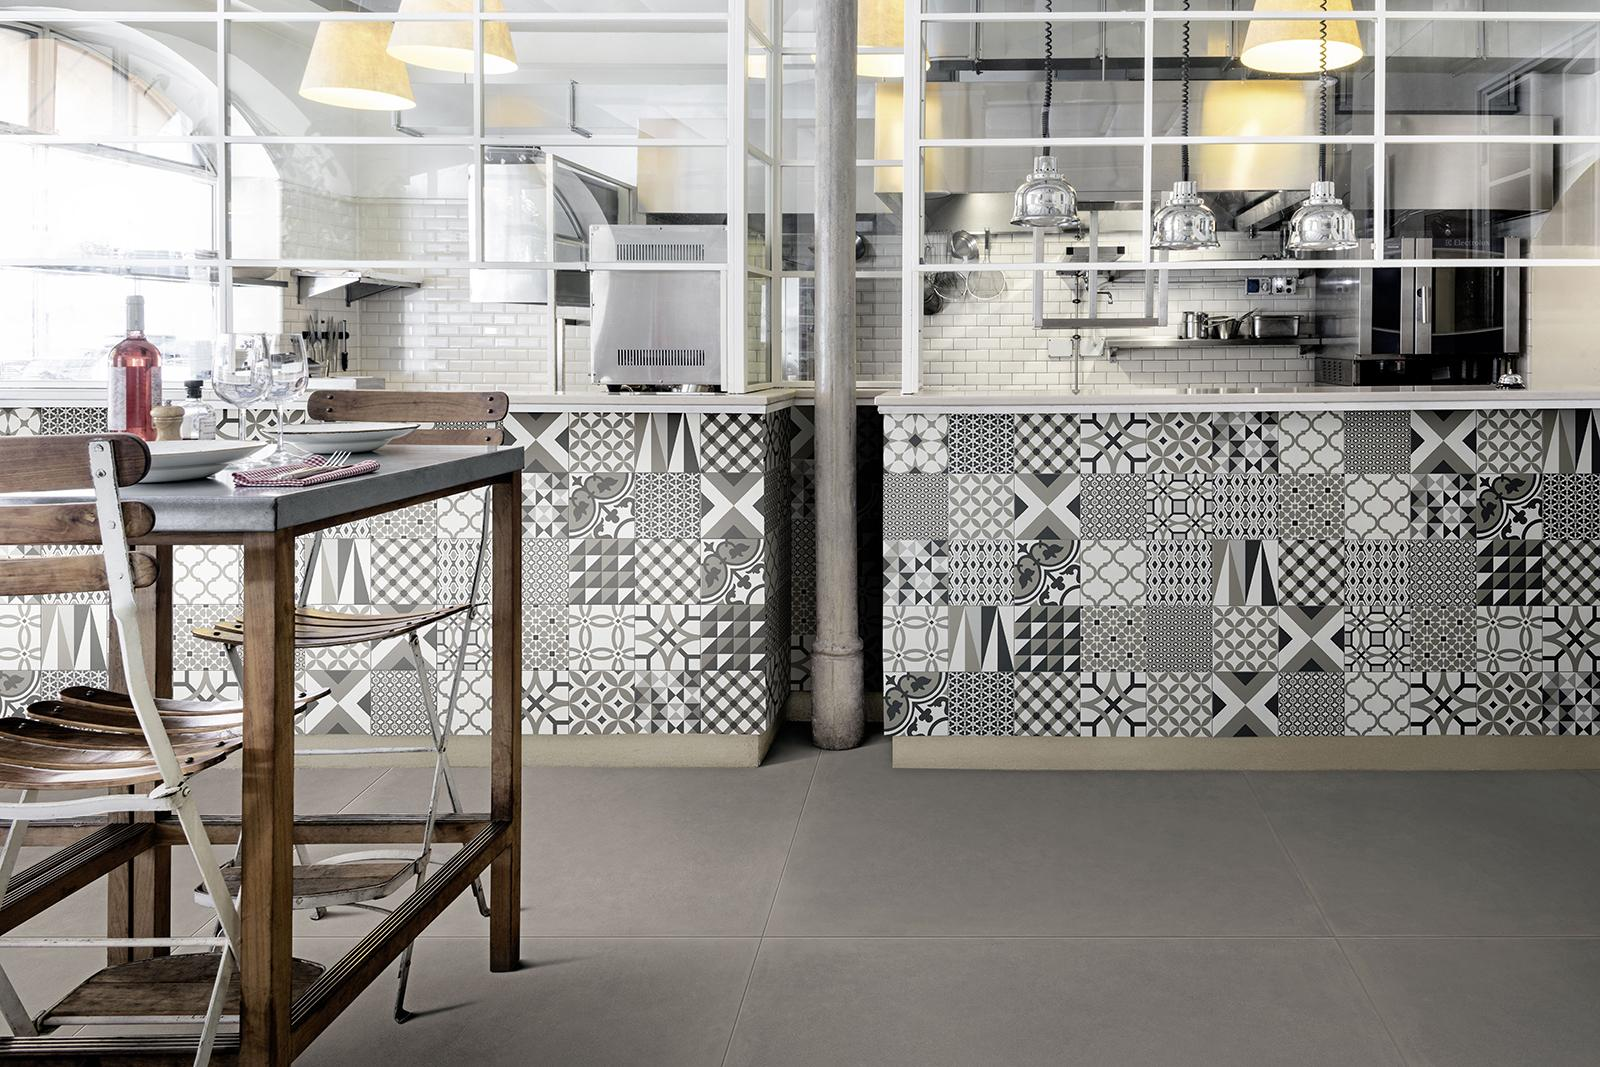 D_Segni cement tiles small sizes with great appeal  Marazzi